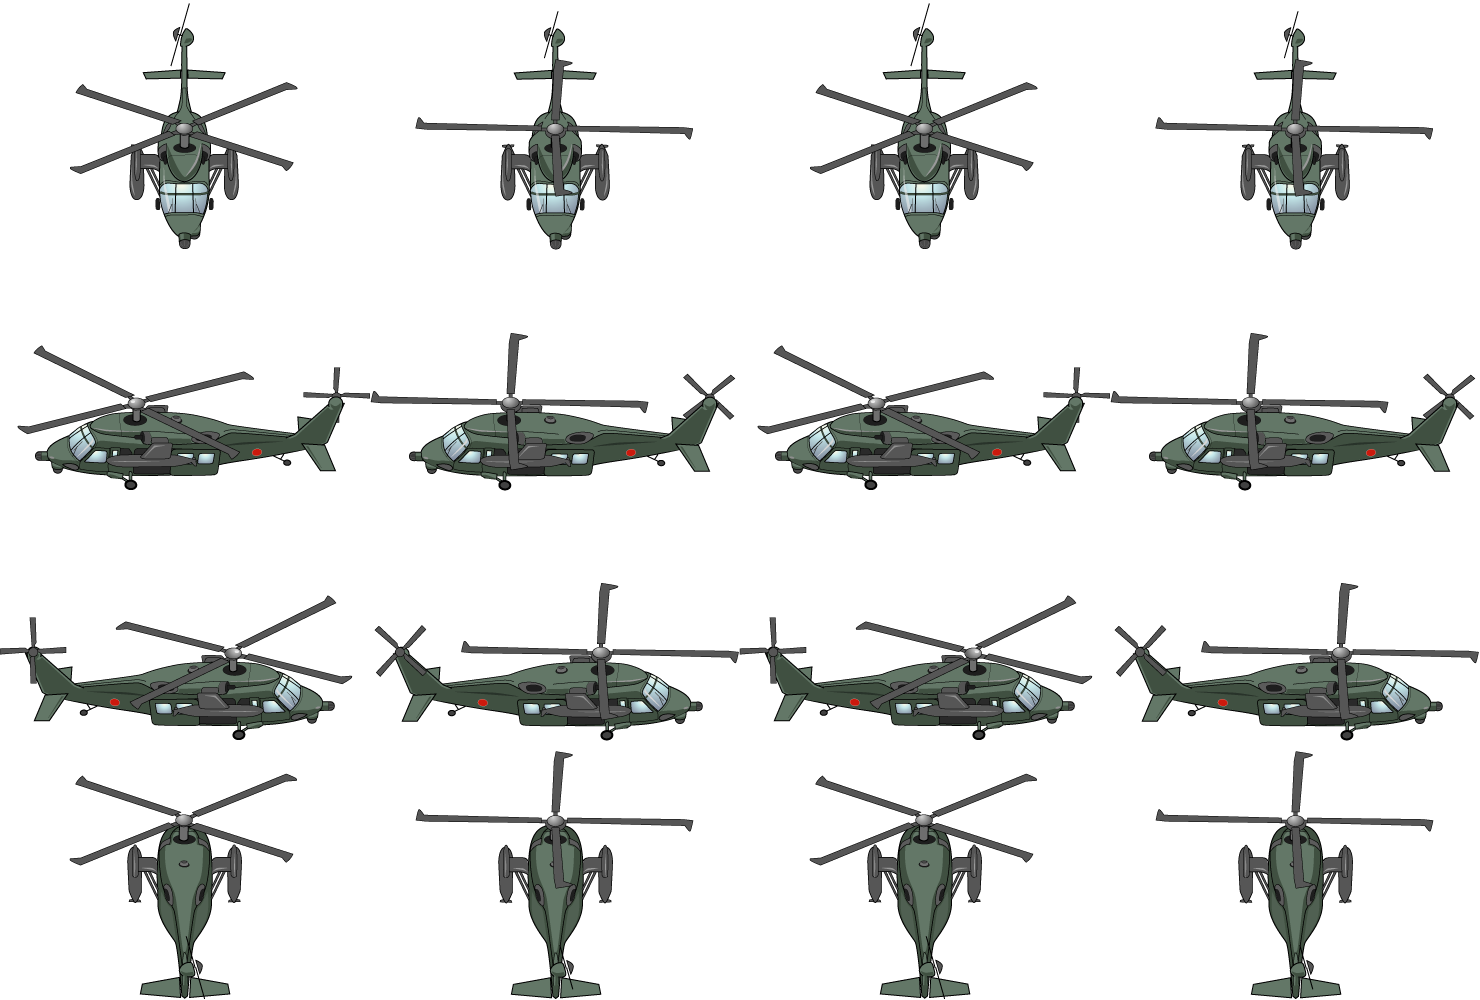 Screenshot de vos projets - Page 4 Uh60j-5021208